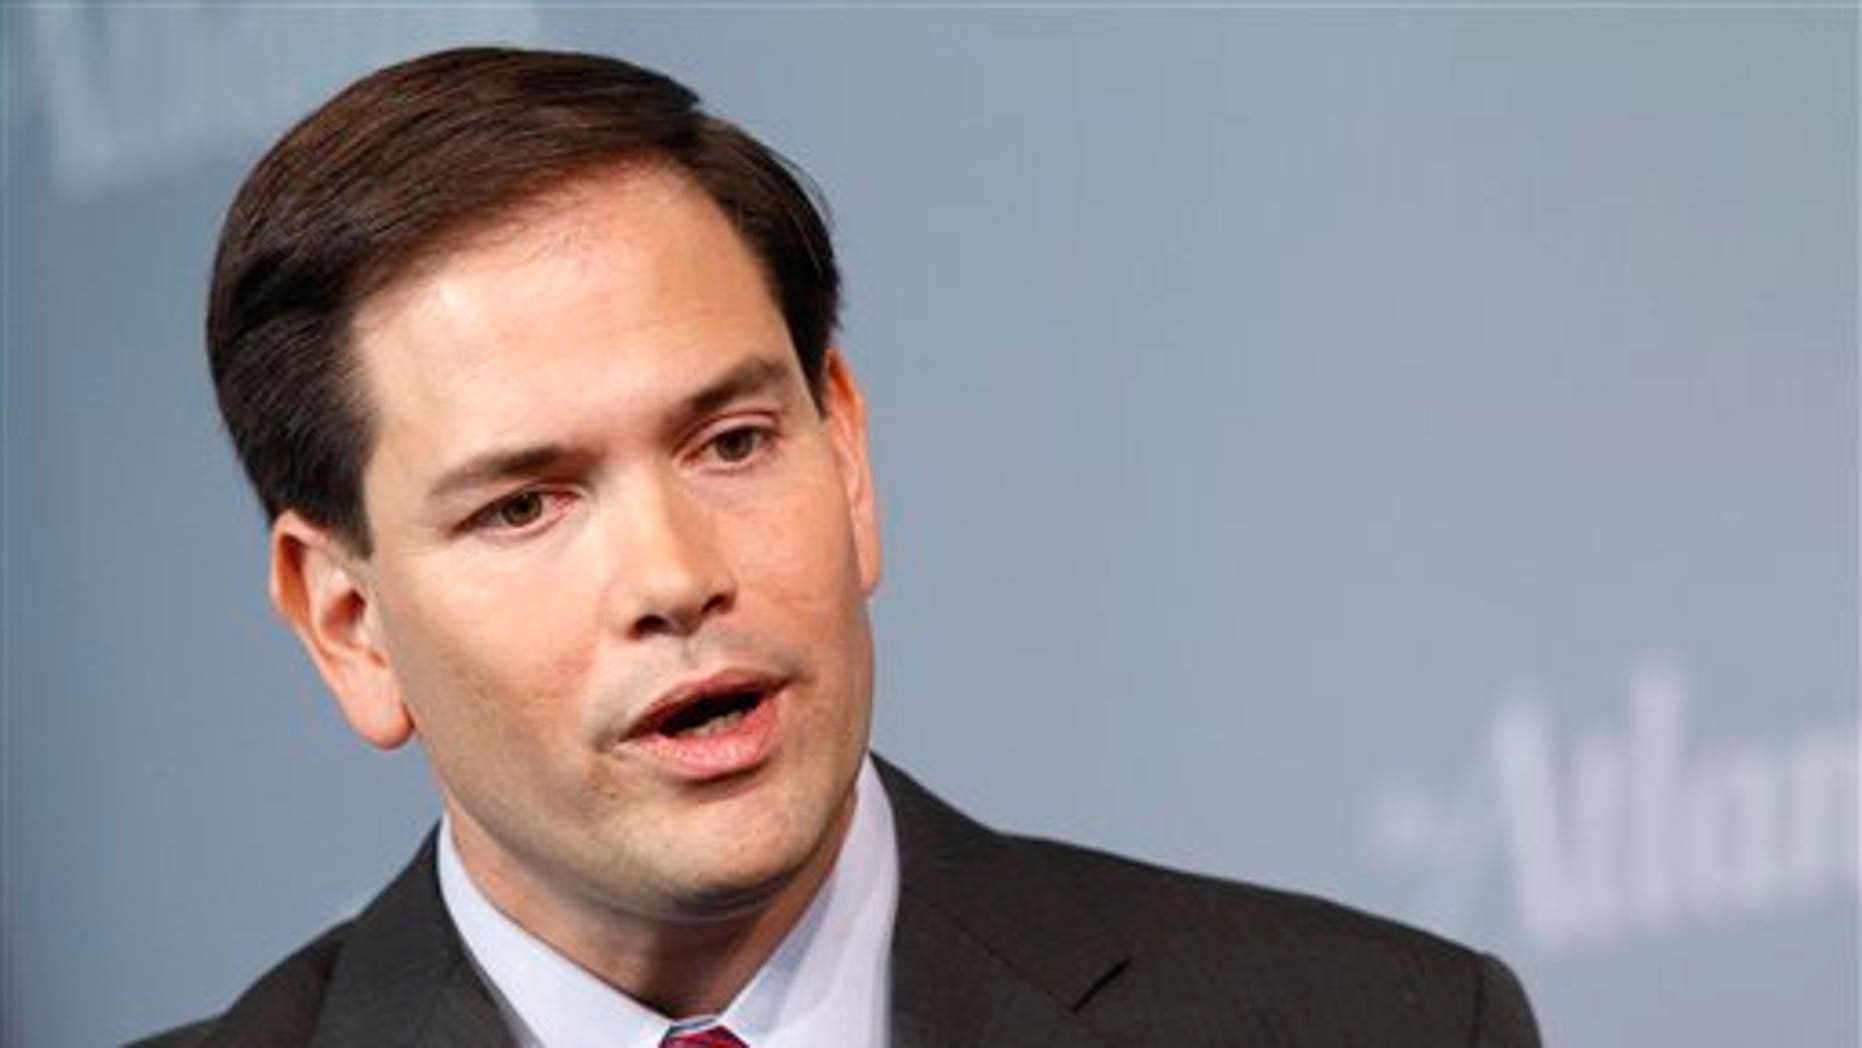 Sen. Marco Rubio, R-Fla., speaks during the Atlantic Forum, Wednesday, Oct. 5, 2011, at the Newseum in Washington. The Atlantic, the Aspen Institute, and the Newseum presented the third Annual Washington Ideas Forum, which drew together more than 60 policy makers, business leaders, and top journalists for a series of conversations and in-depth interviews about the direction of the country. (AP Photo/Haraz N. Ghanbari)